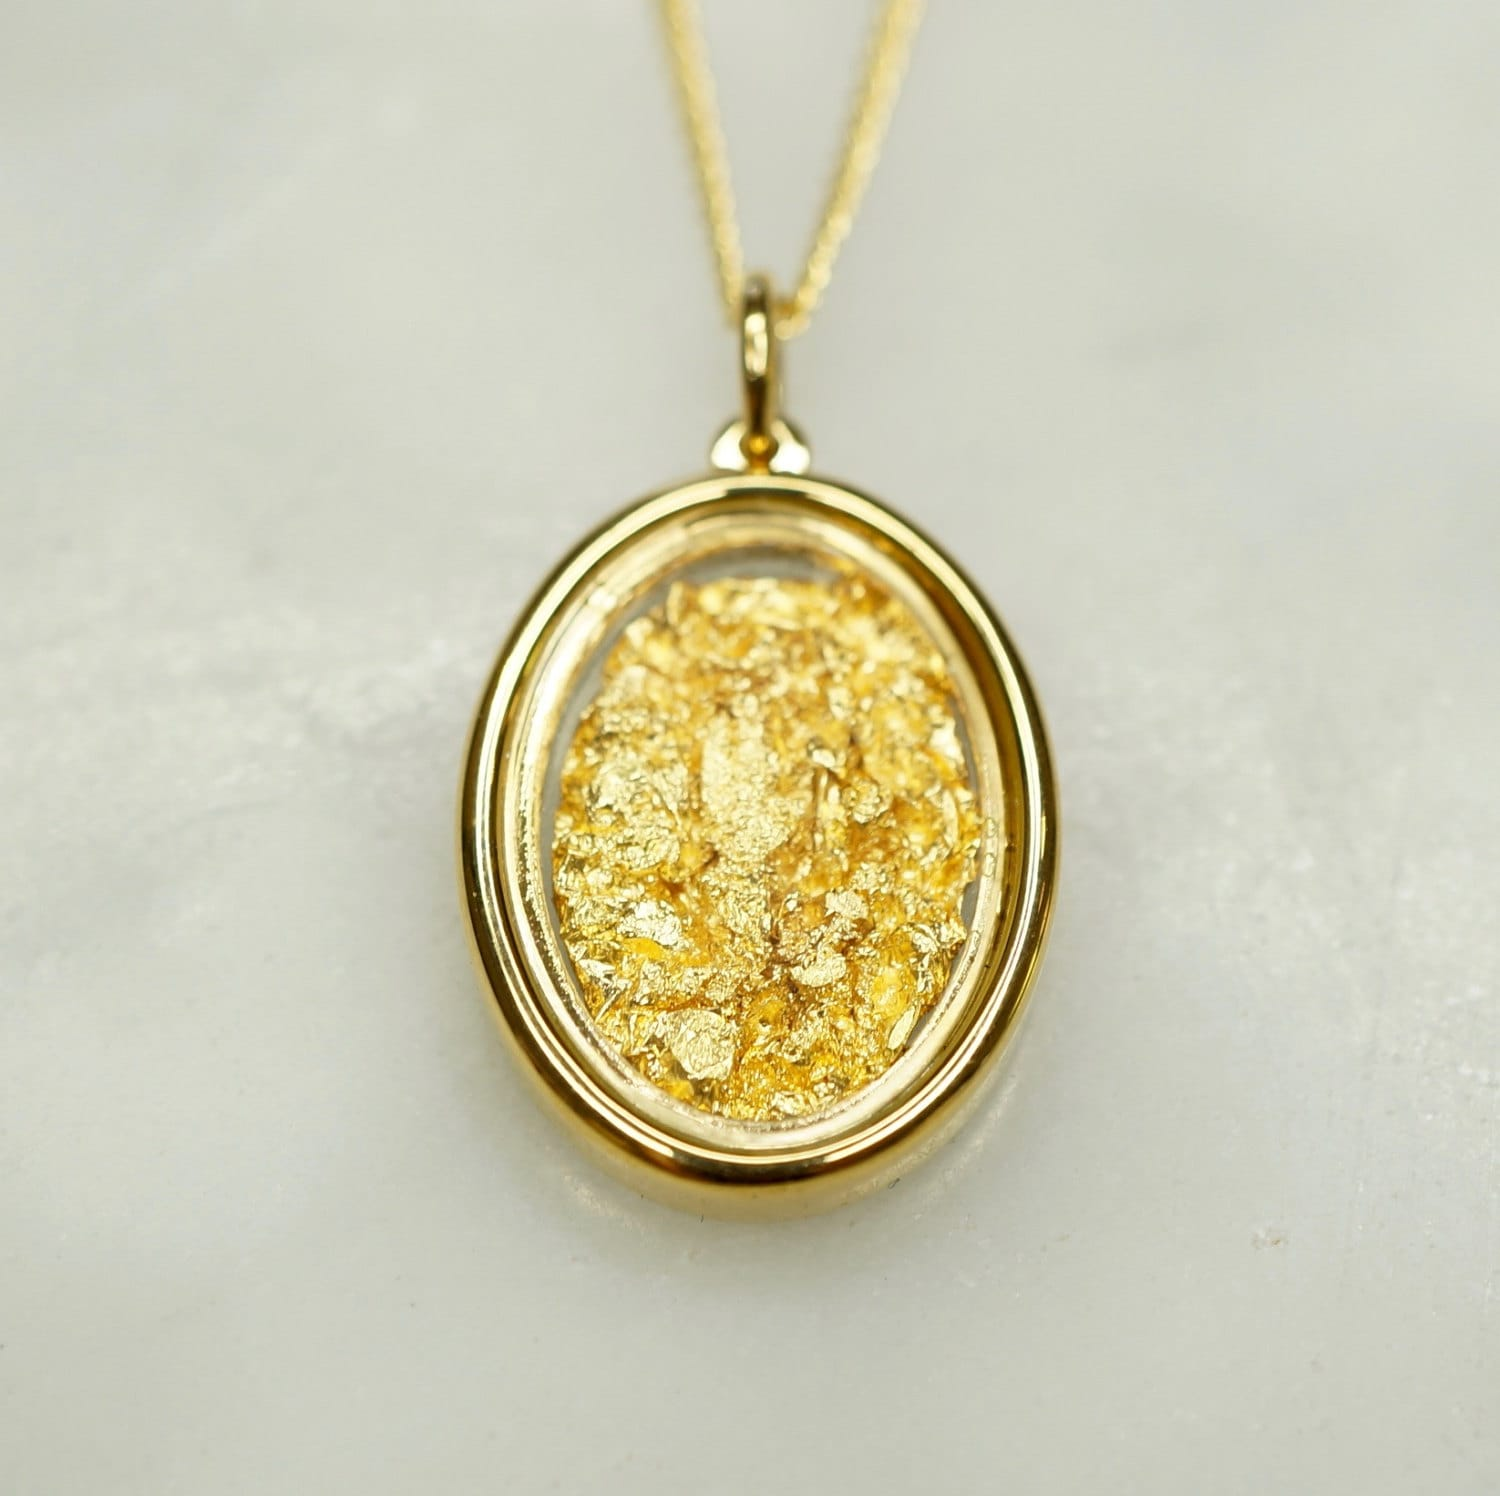 jewelry leaves fashion women type lady item gold pendant long new sweater leaf necklace chain for